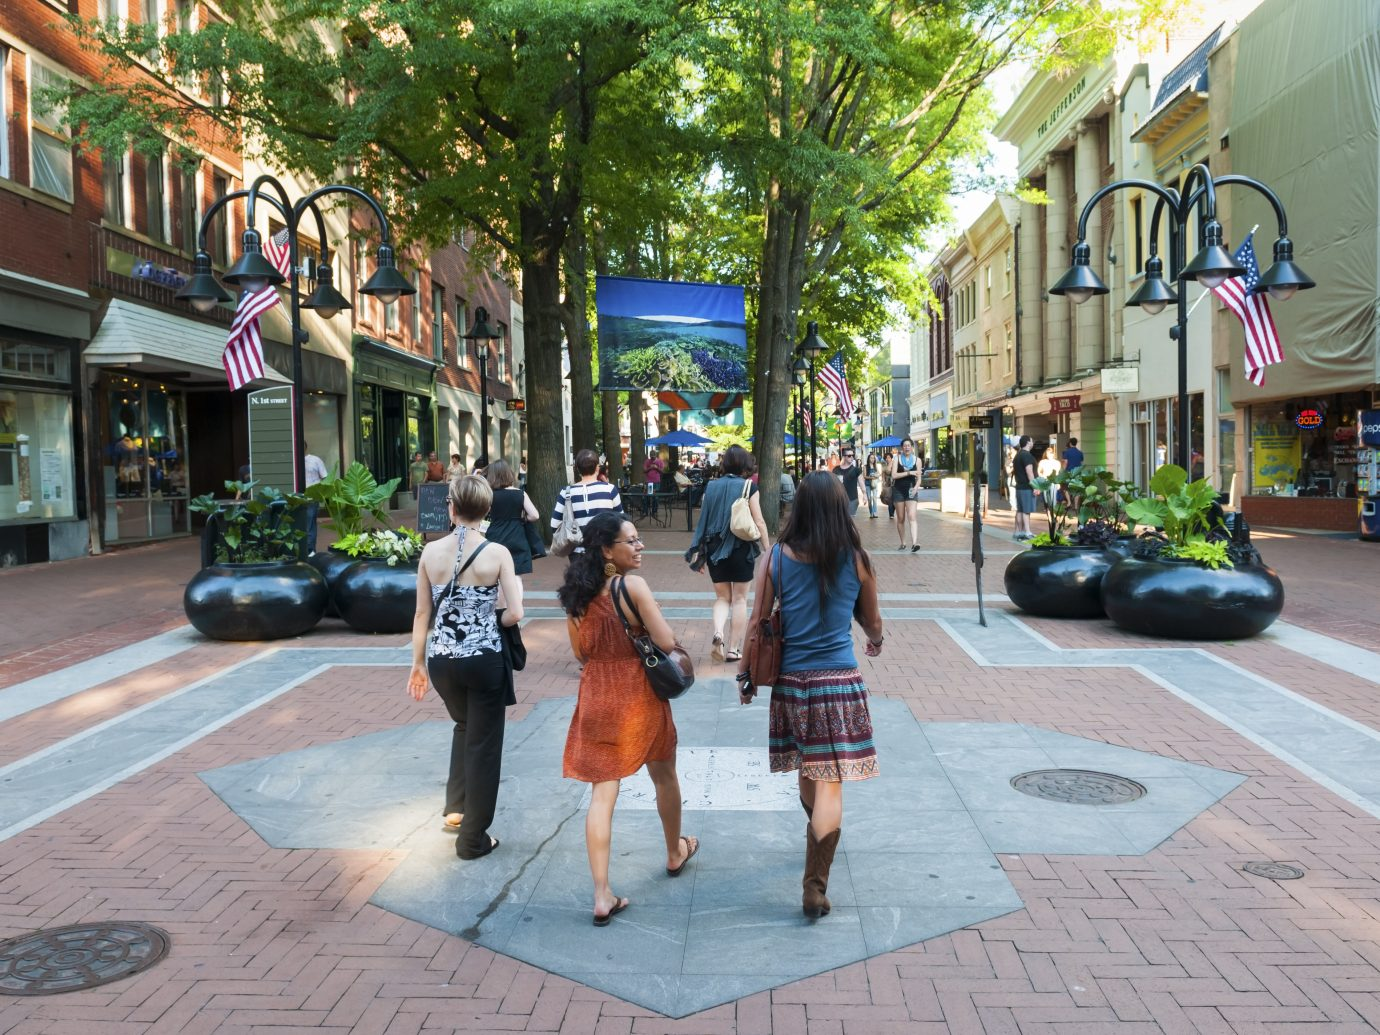 Charlottesville, Virginia, USA - June 7, 2012: Pedestrians enjoy a beautiful summer afternoon in downtown Charlottesville.